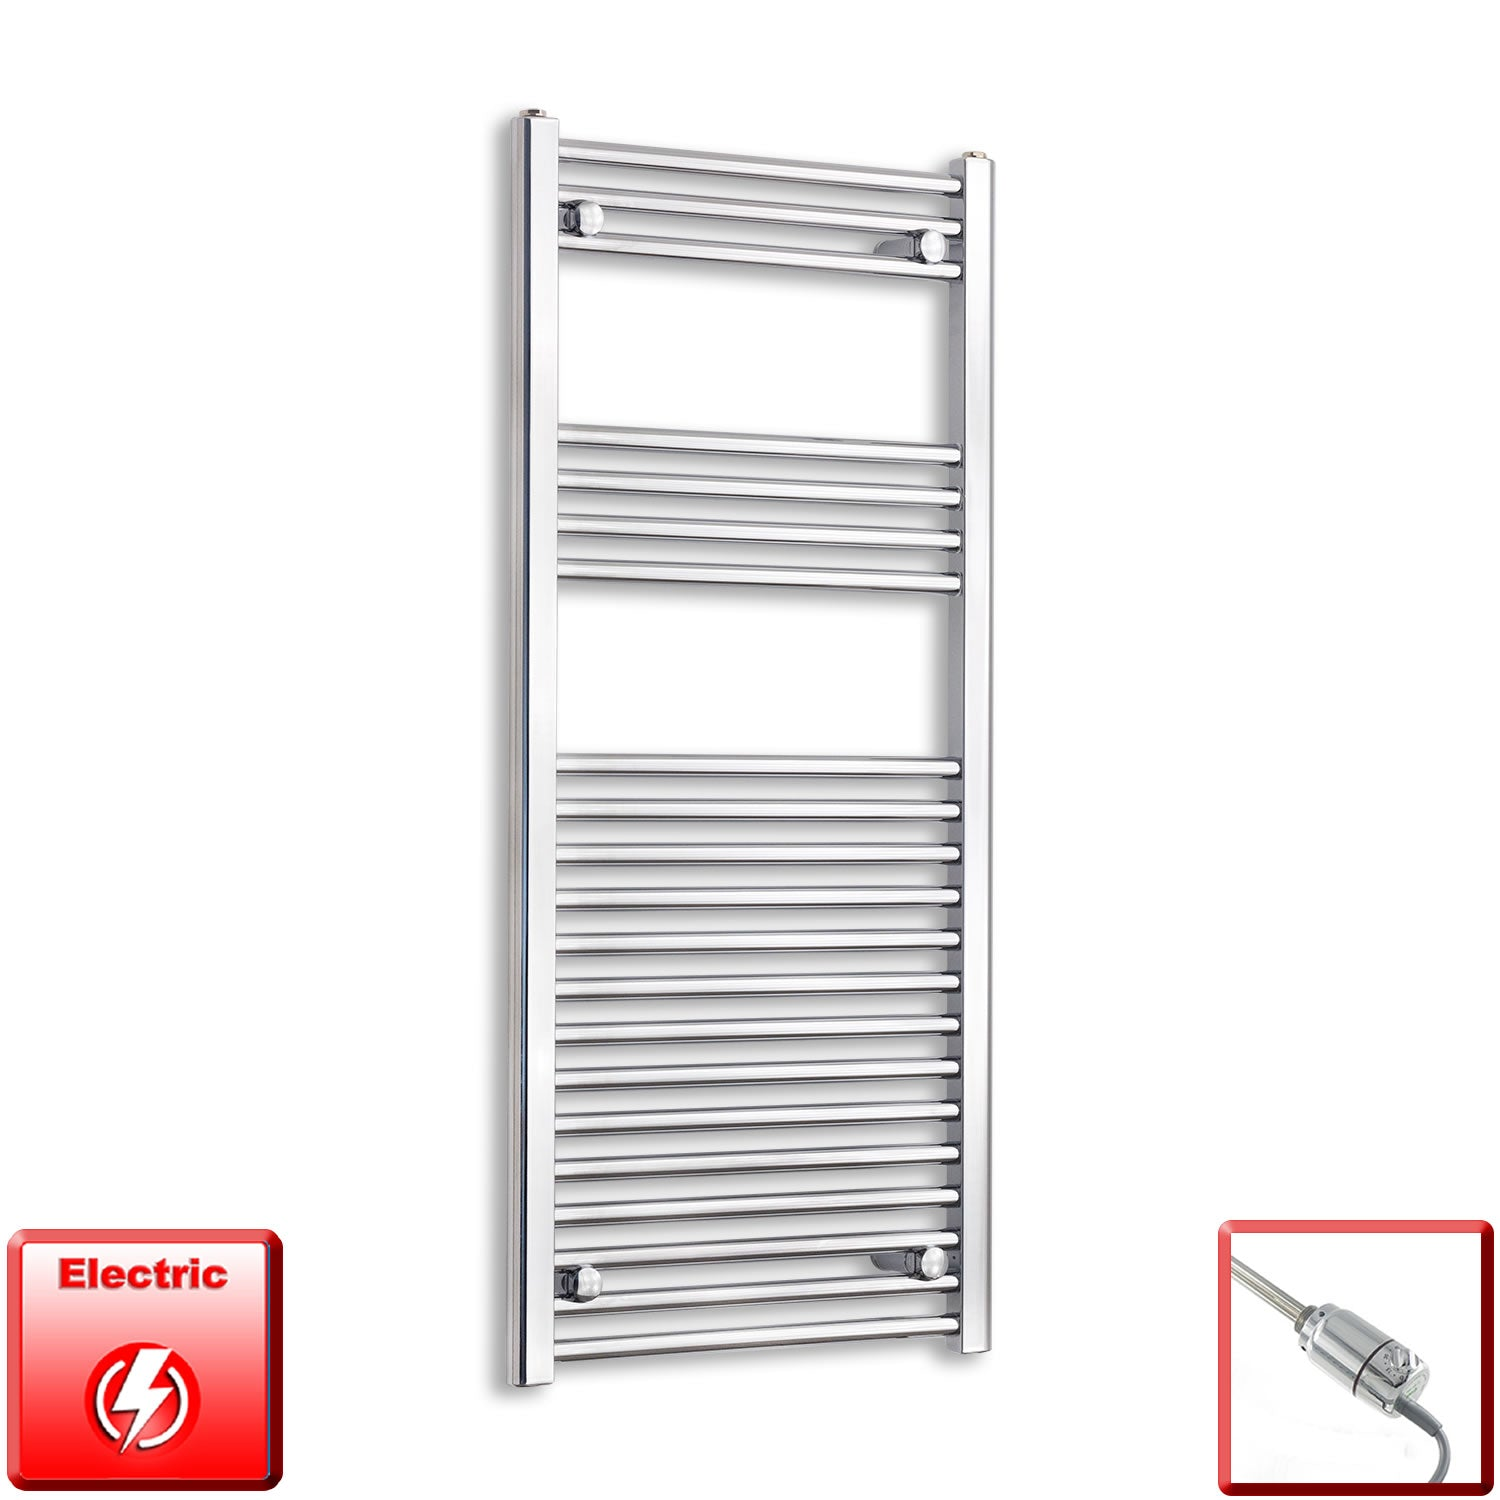 500mm Wide 1118mm High Pre-Filled Electric Heated Towel Rail Radiator Chrome HTR,GT Thermostatic